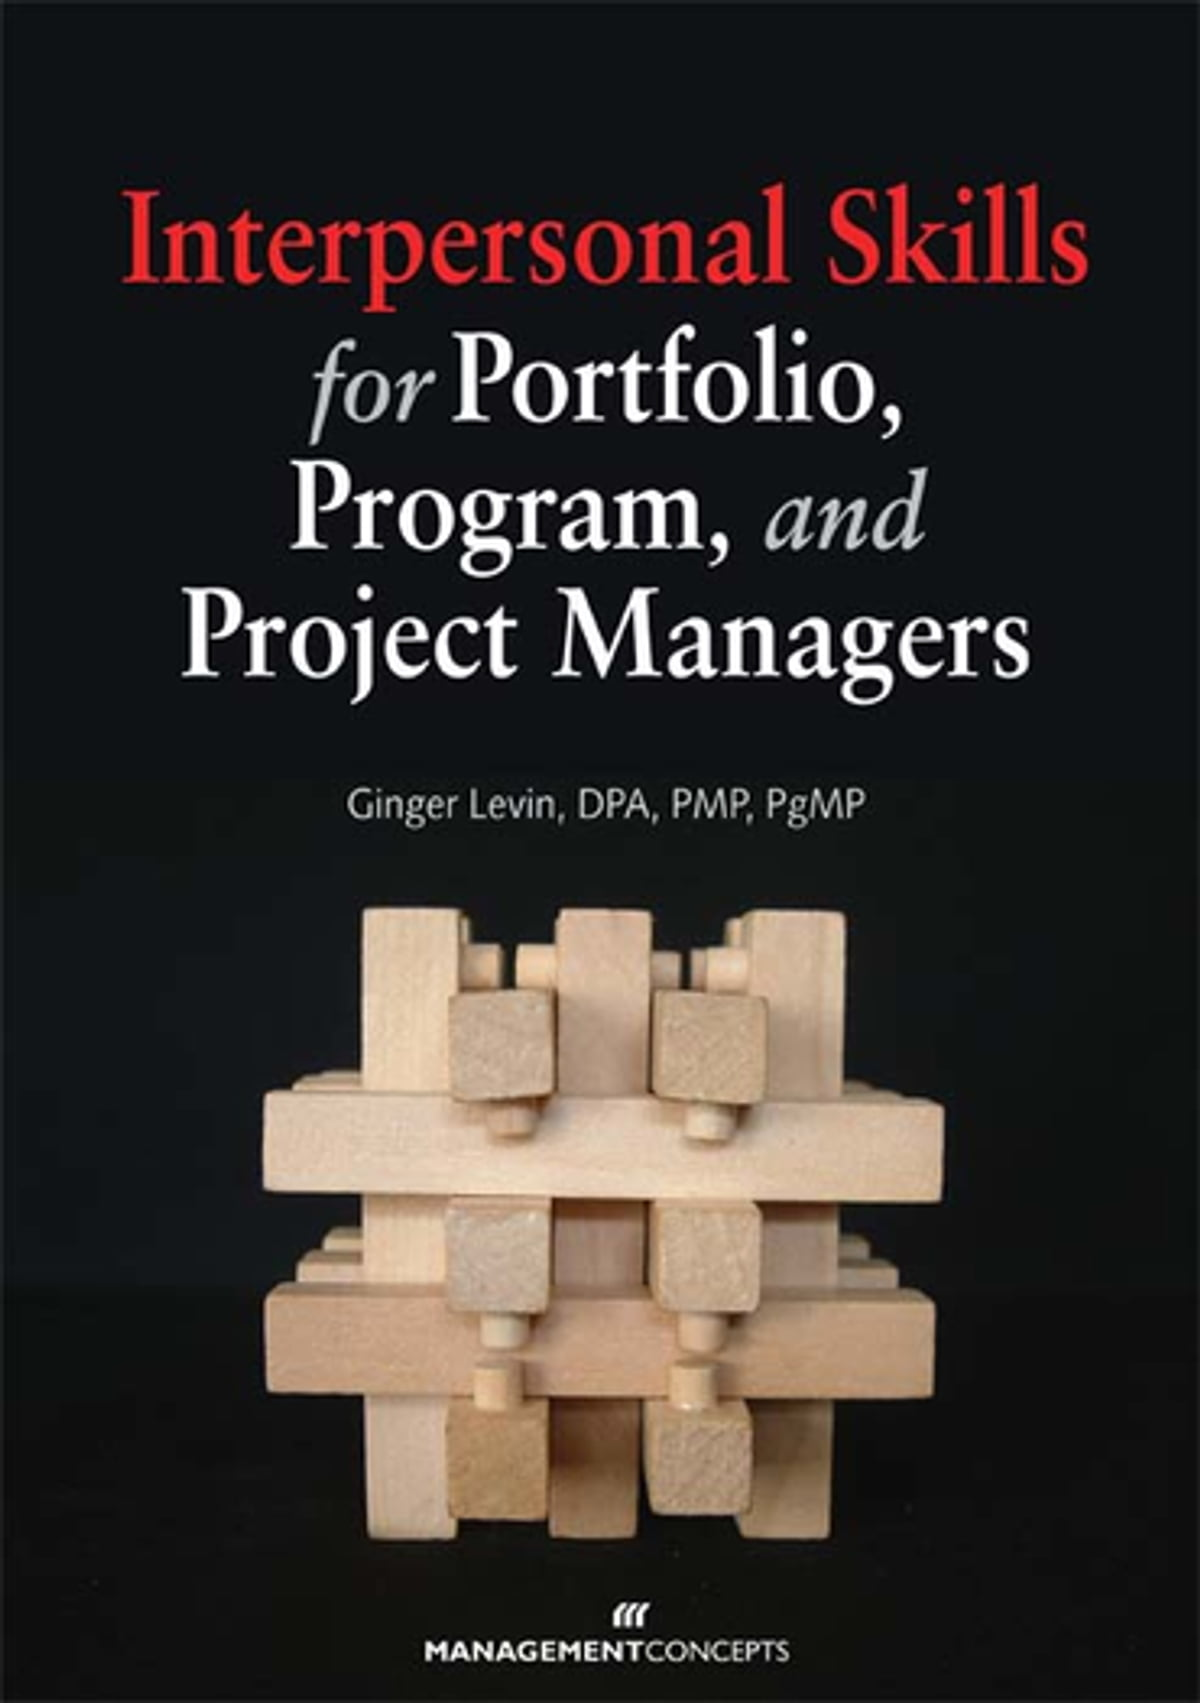 Interpersonal Skills for Portfolio, Program, and Project Managers eBook by  Ginger Levin DPA, PMP, PgMP - 9781567263152 | Rakuten Kobo